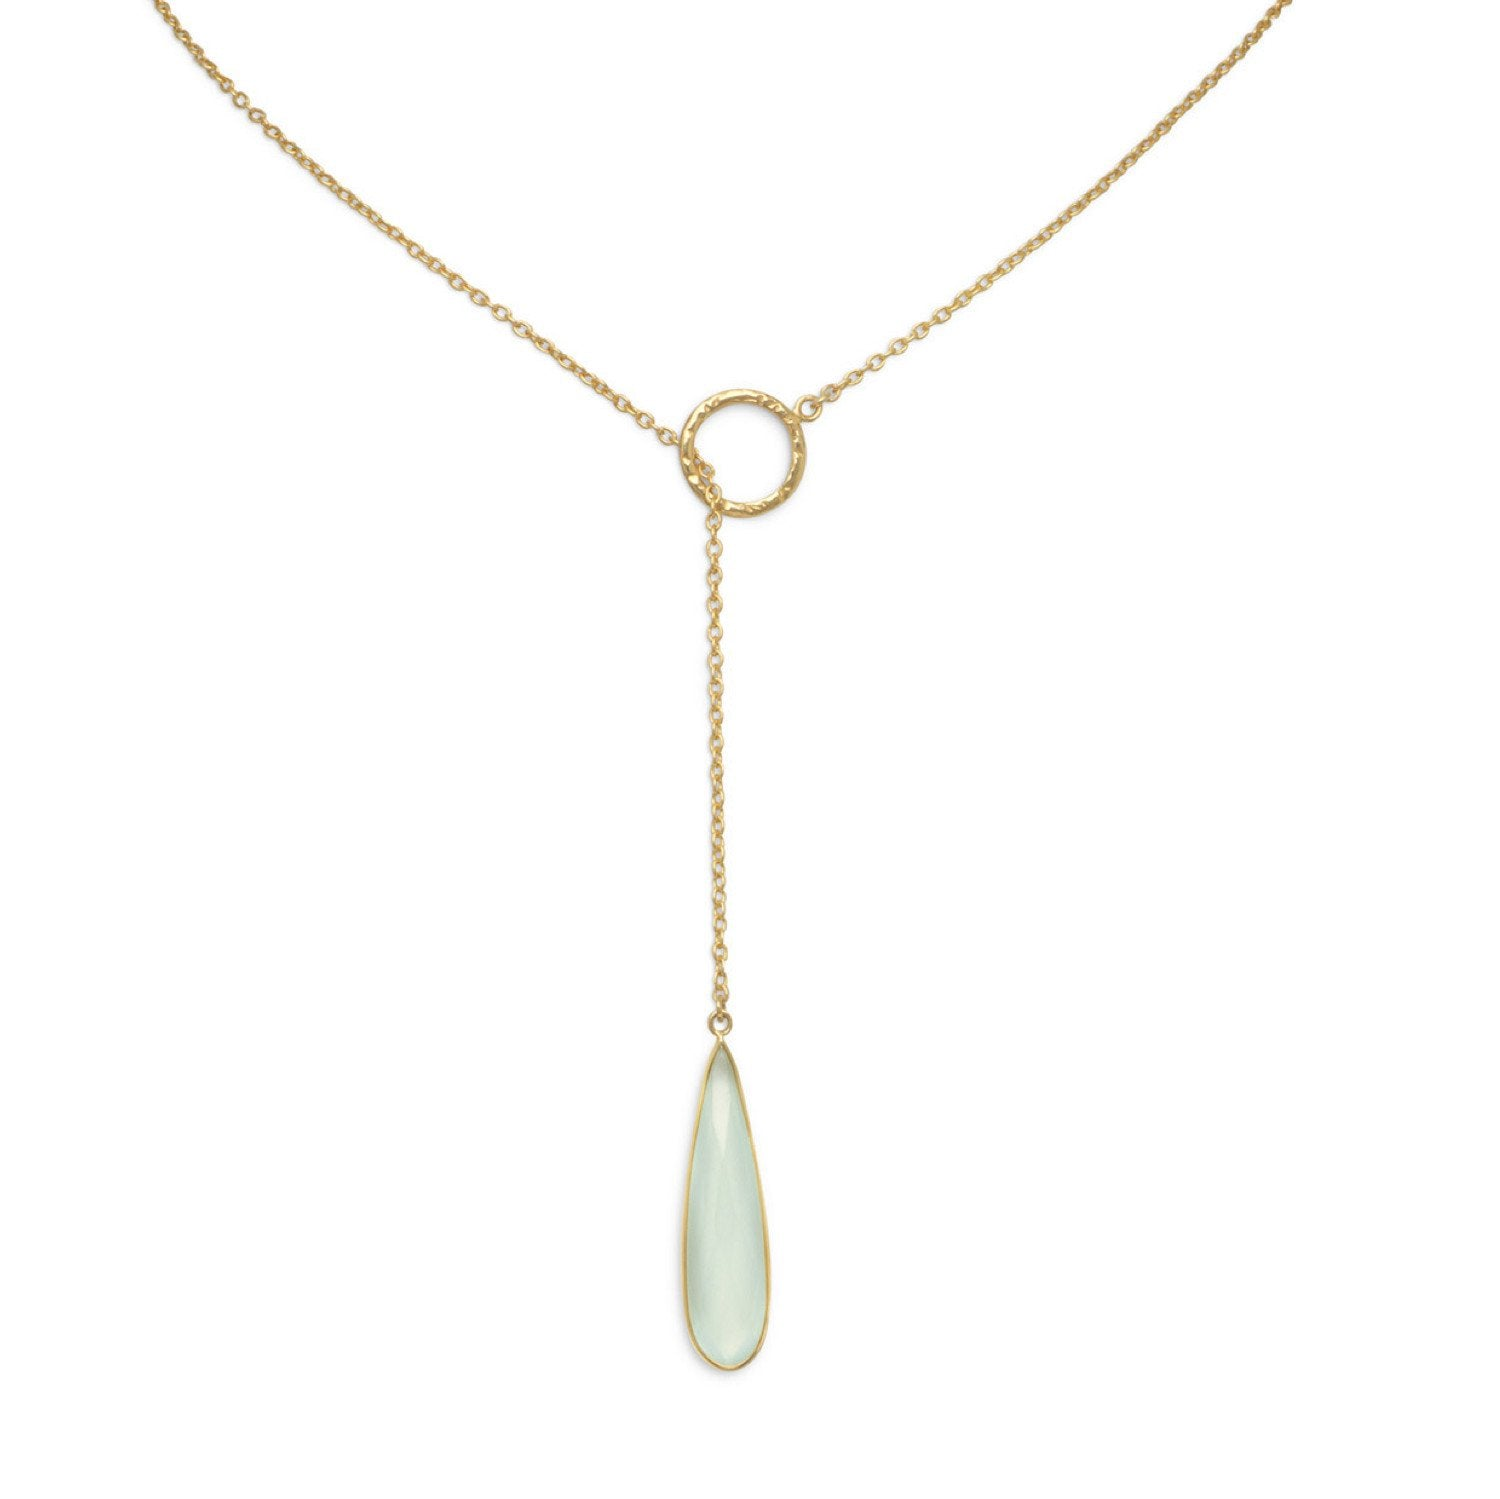 18K Gold Chalecedony Pear Drop Lariat Necklace